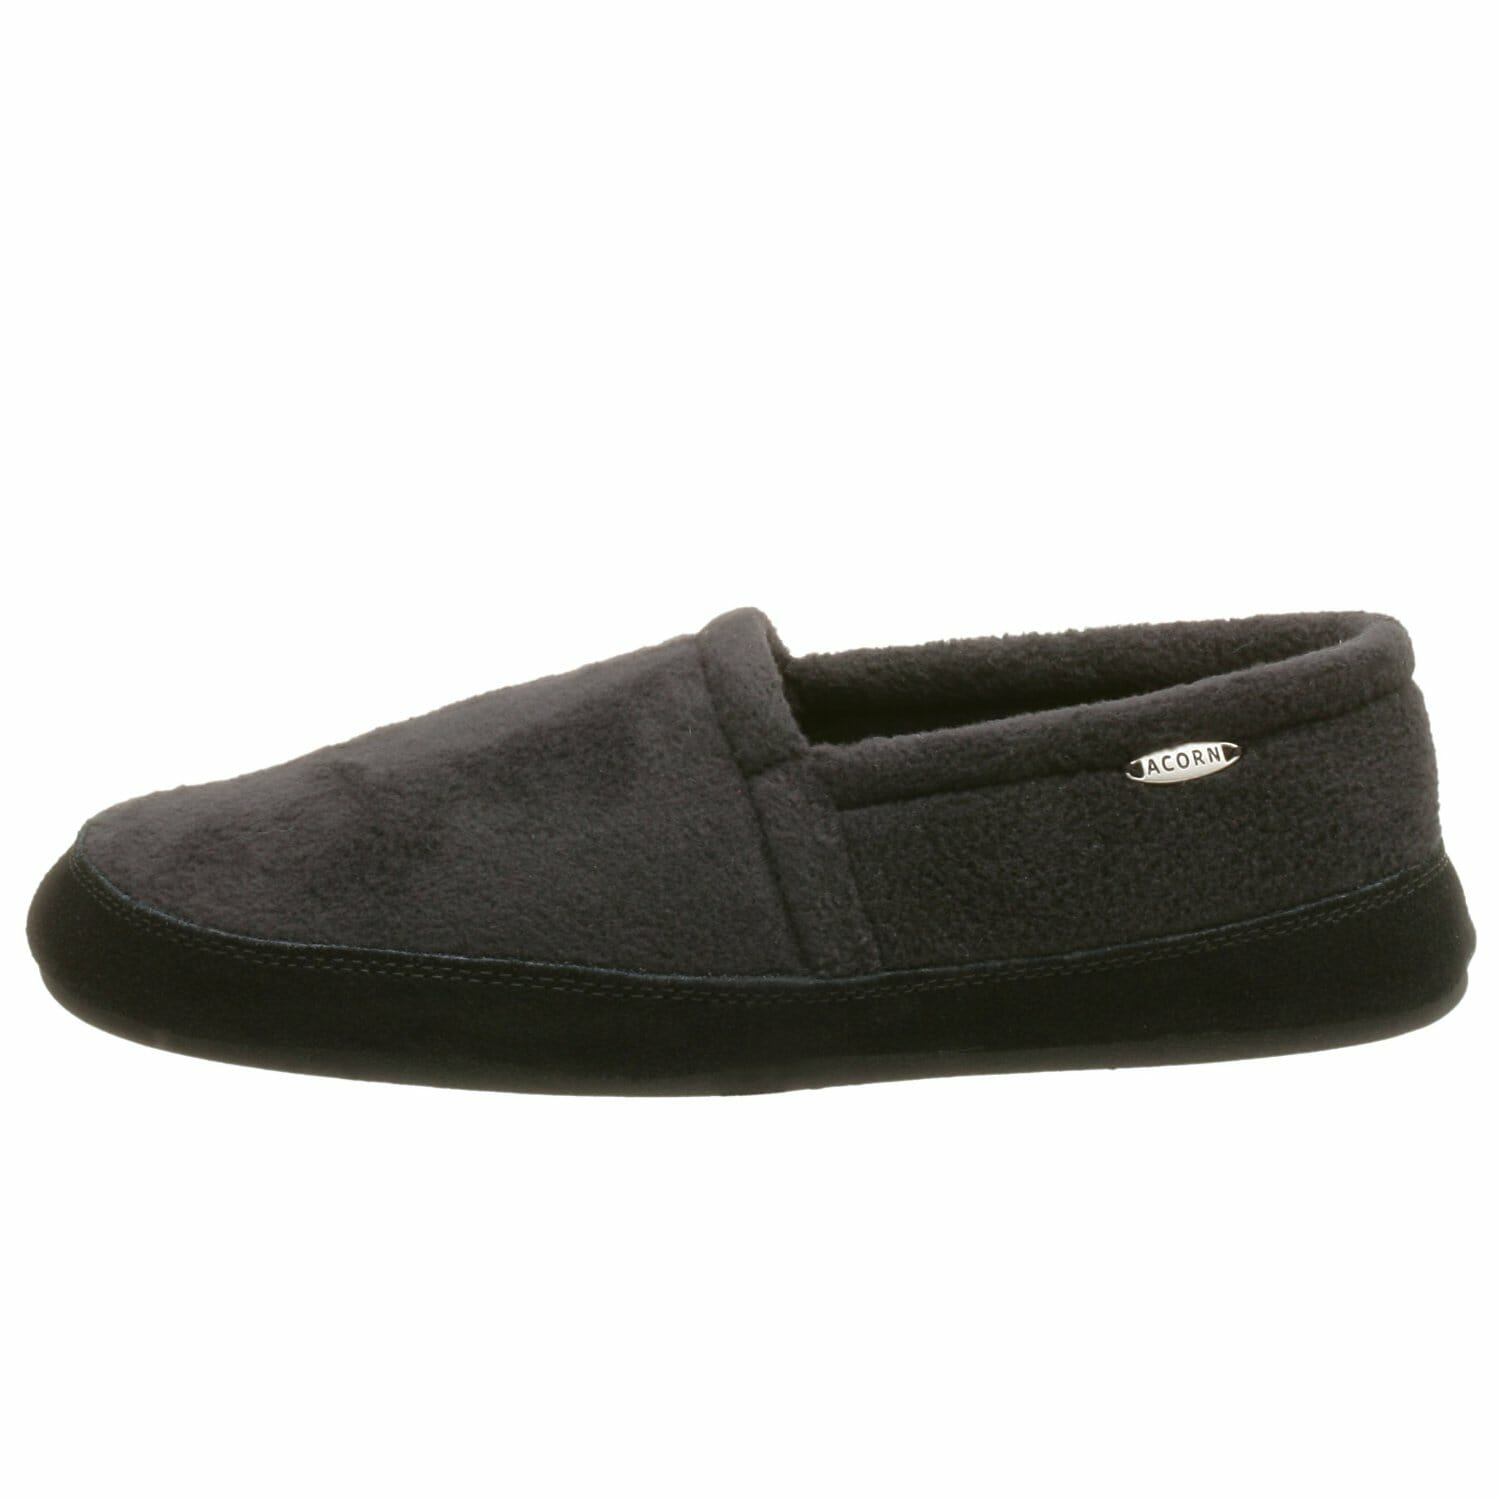 58b08d3b088 This men s slipper is a gender neutral option that is made of fleece with a  man-made sole which is very sturdy. Choosing a fabric slipper allows for ...